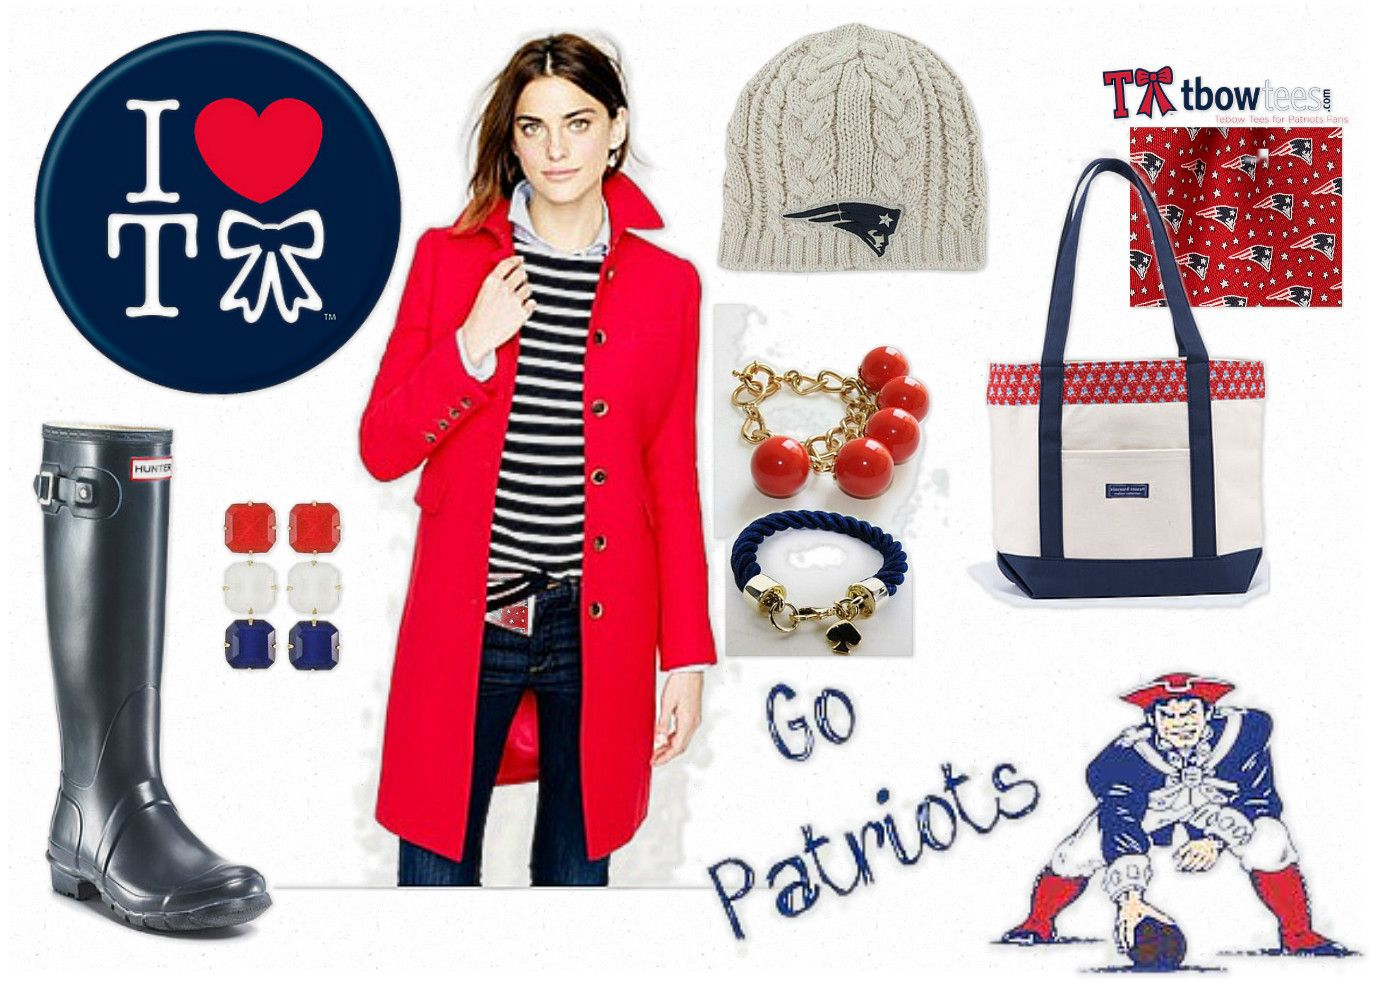 New England Patriots Tebow Outfit Fashion Ideas Vineyard Vines And J Crew Items Tebow Shirts Gameday Outfit Fashion New England Patriots